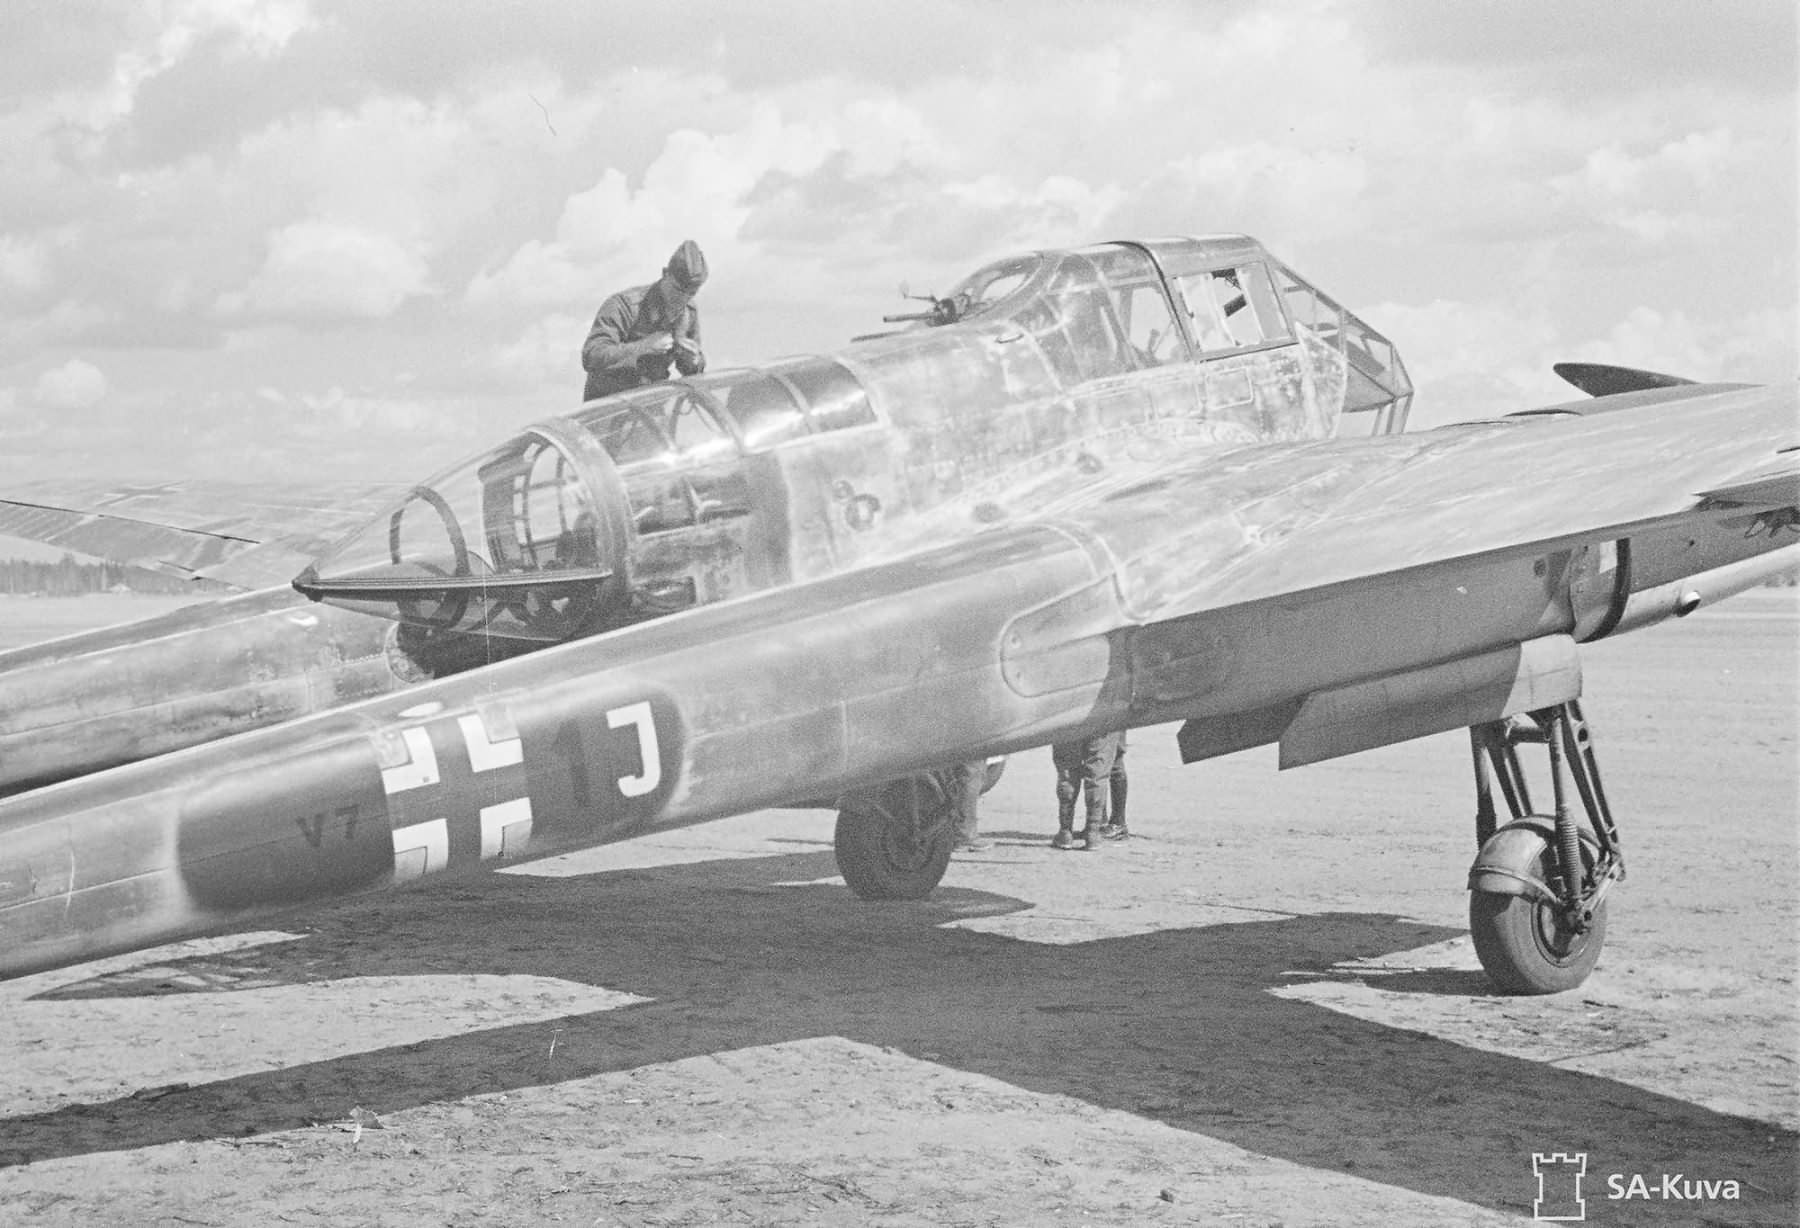 Fw 189 A-3 of the 1.(H)/32 V7+1J, June 1943